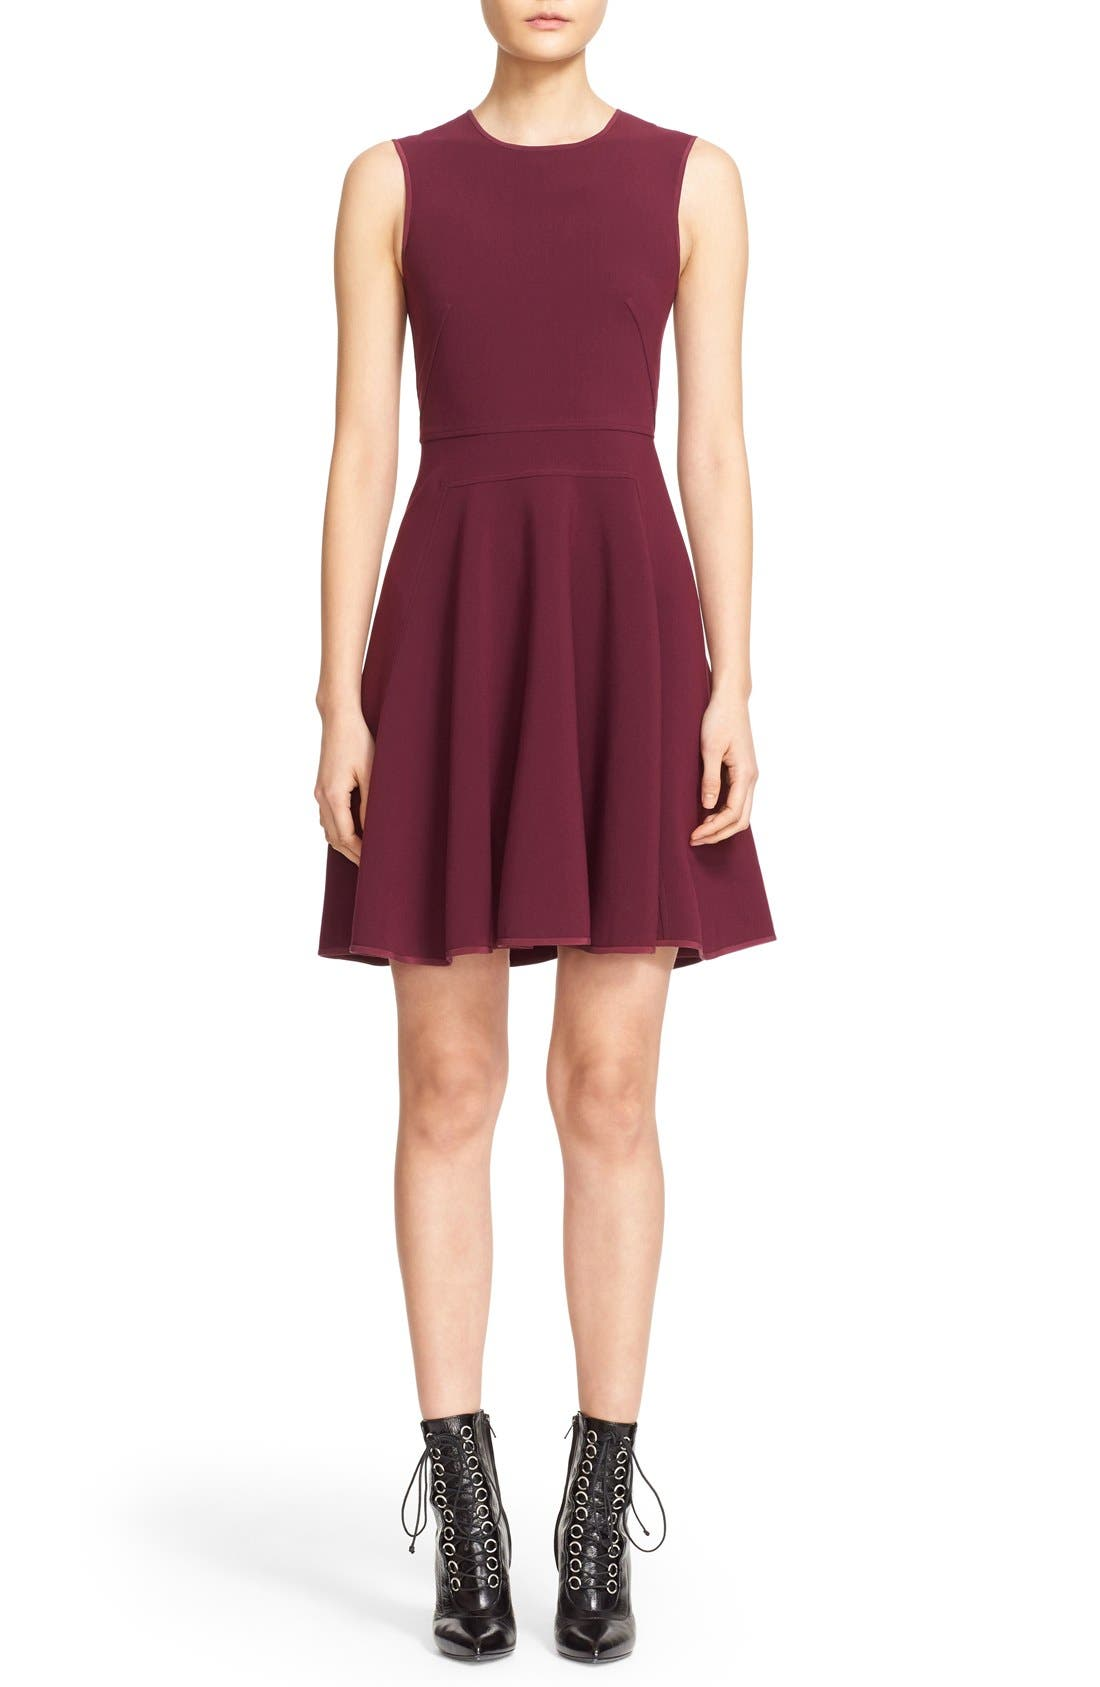 Alternate Image 1 Selected - Rebecca Taylor Seam Detail Sleeveless Fit & Flare Dress